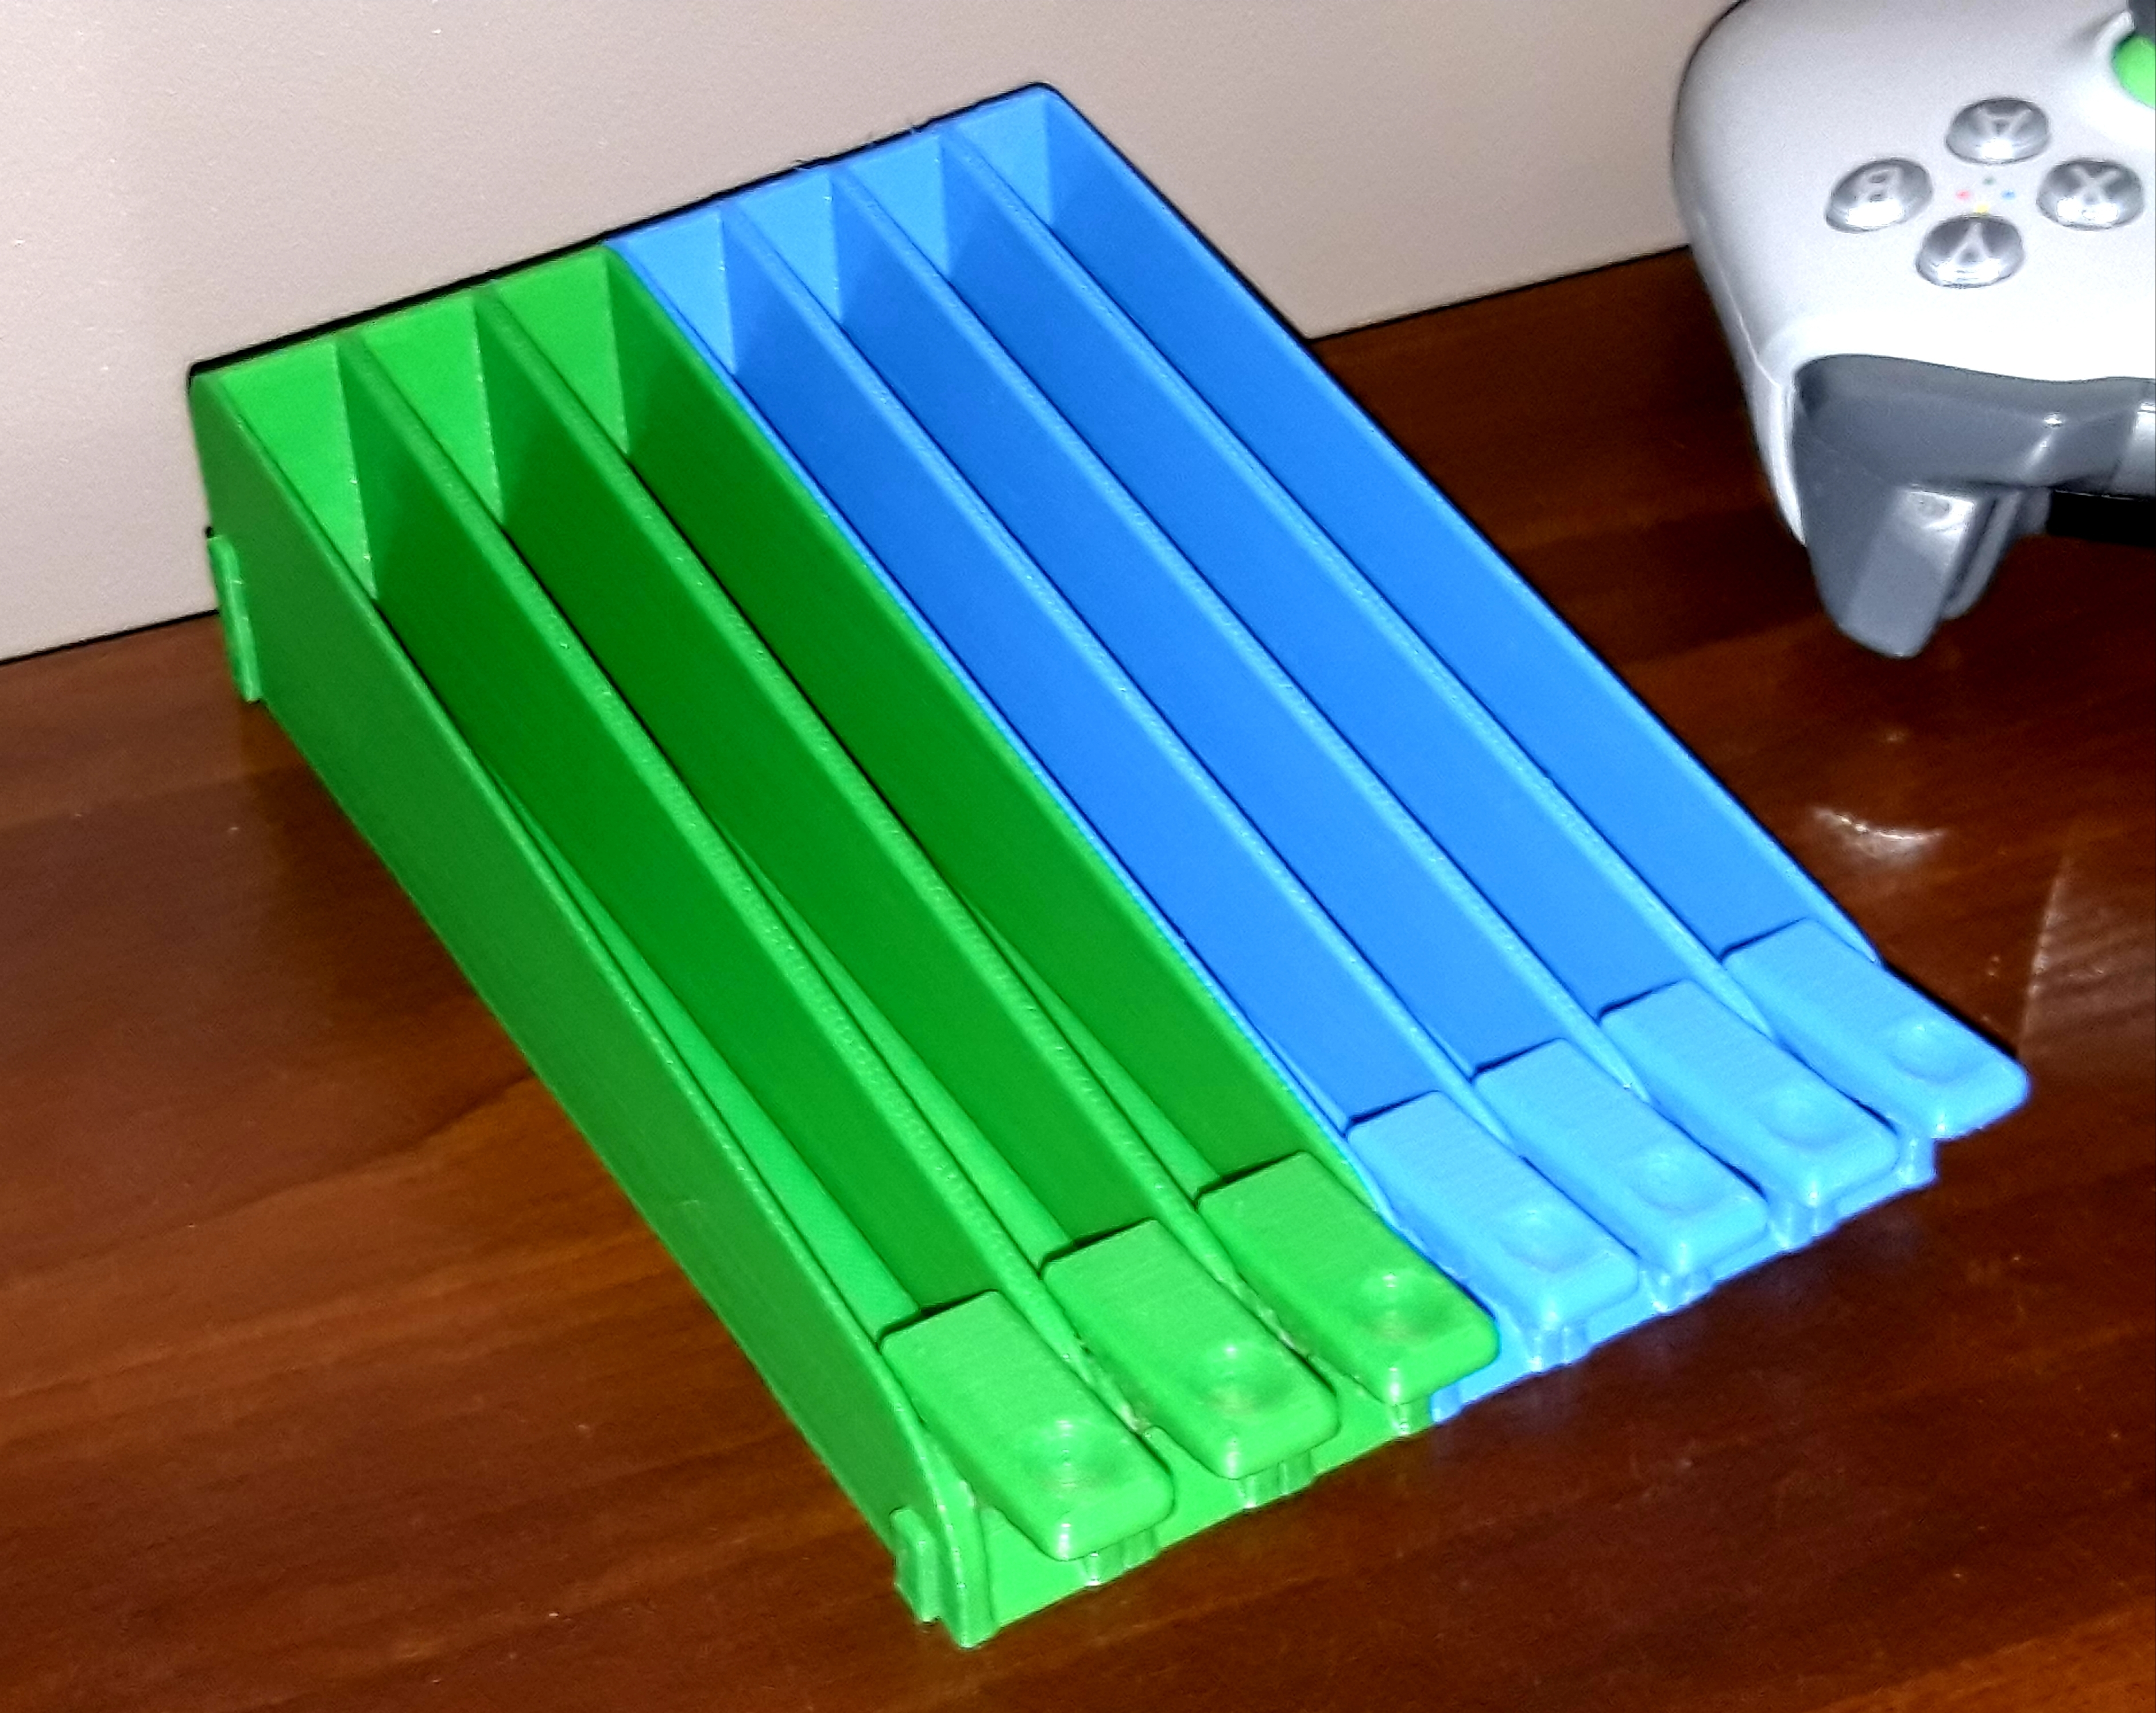 20210106_143636.jpg Download STL file Disc stand • 3D printing object, ombre-gringo